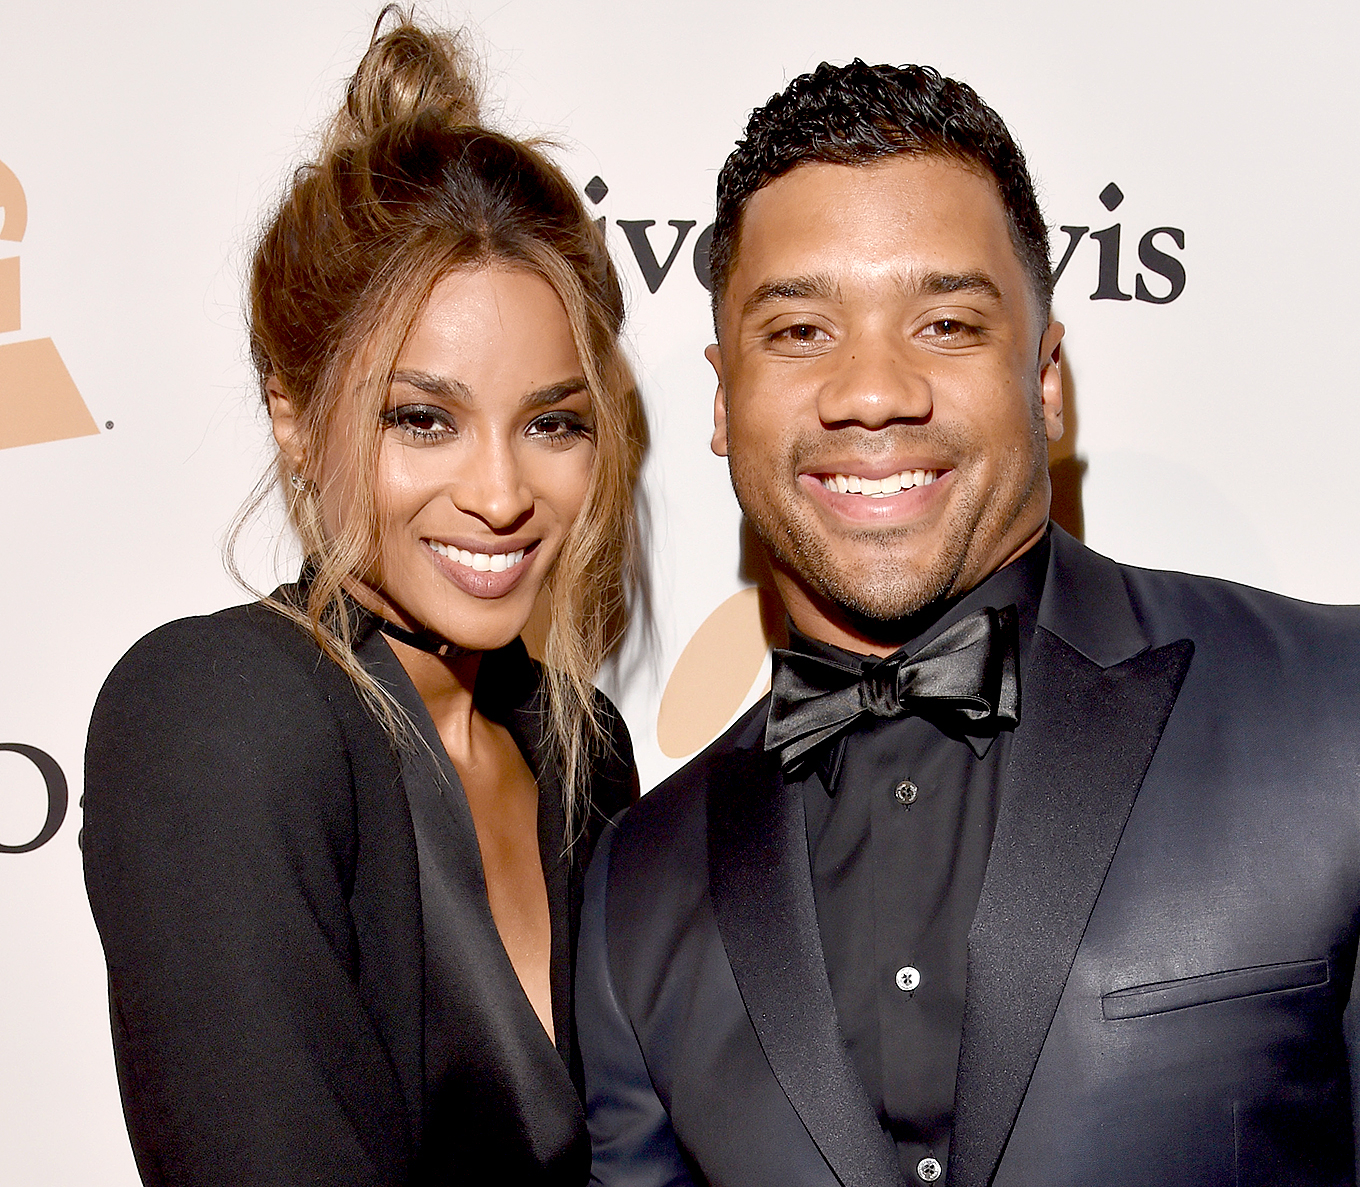 Ciara and NFL player Russell Wilson attend the 2016 Pre-GRAMMY Gala and Salute to Industry Icons honoring Irving Azoff at The Beverly Hilton Hotel on February 14, 2016 in Beverly Hills, California.